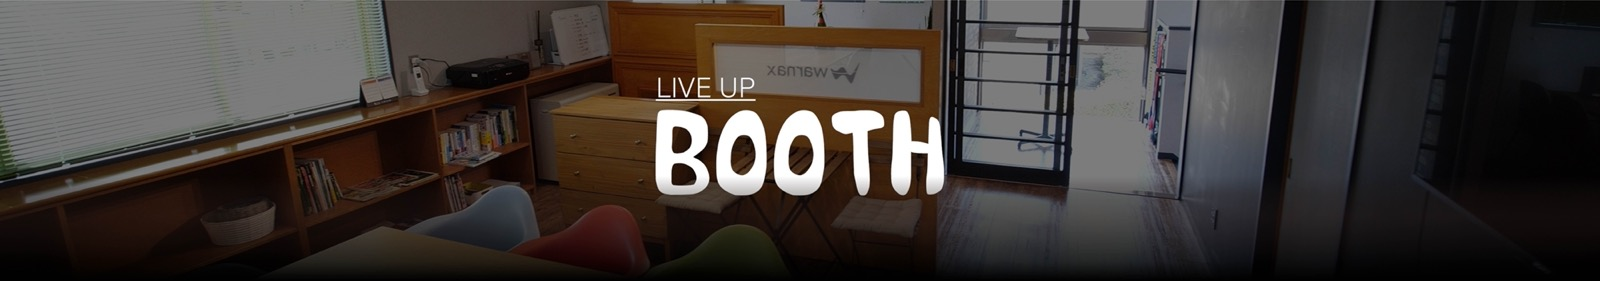 LIVE UP BOOTH